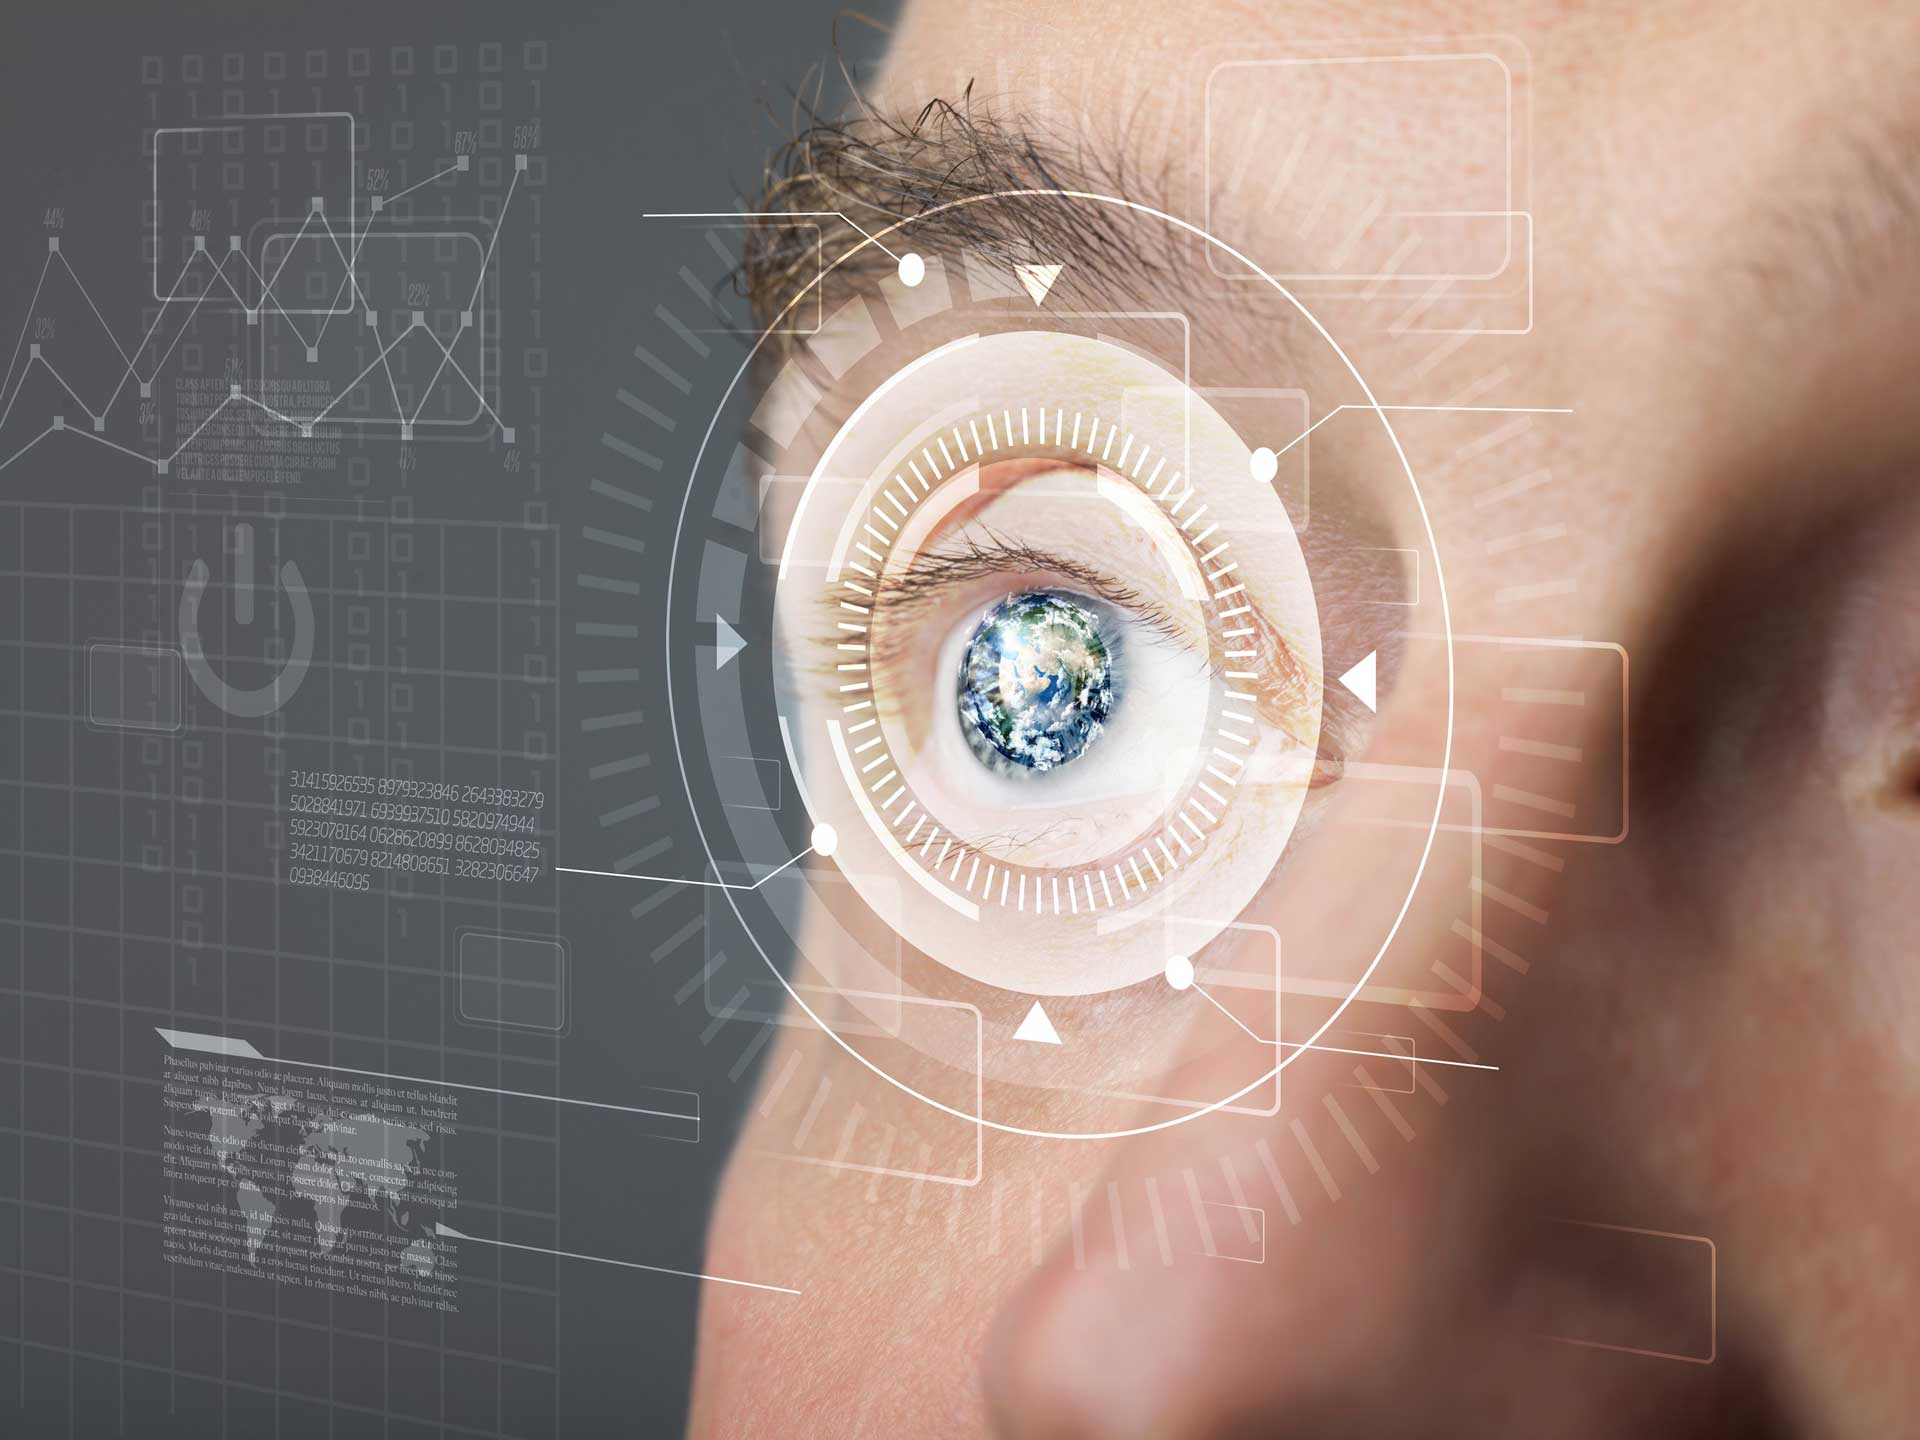 IRIS Scanner | Biometric IRIS Recognition